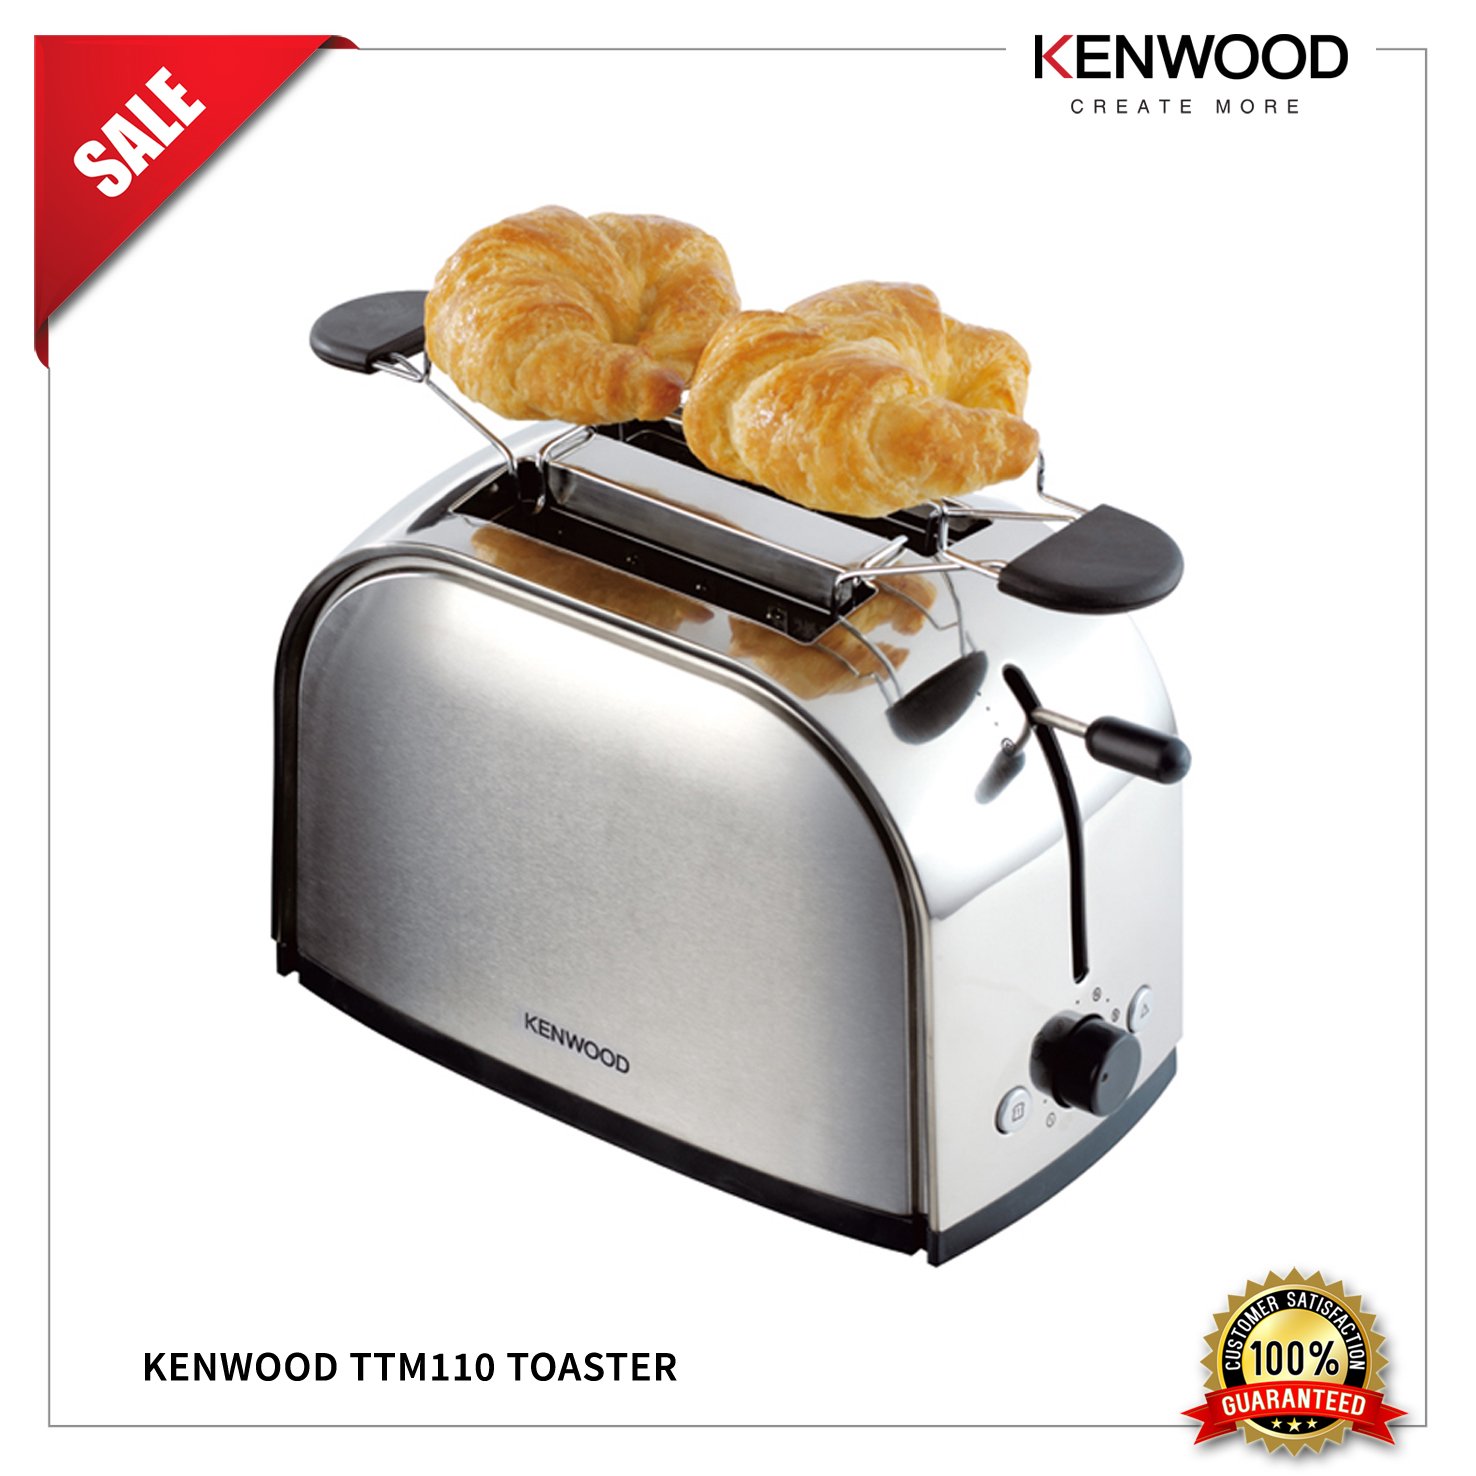 KENWOOD_TTM110 – REVISI 2